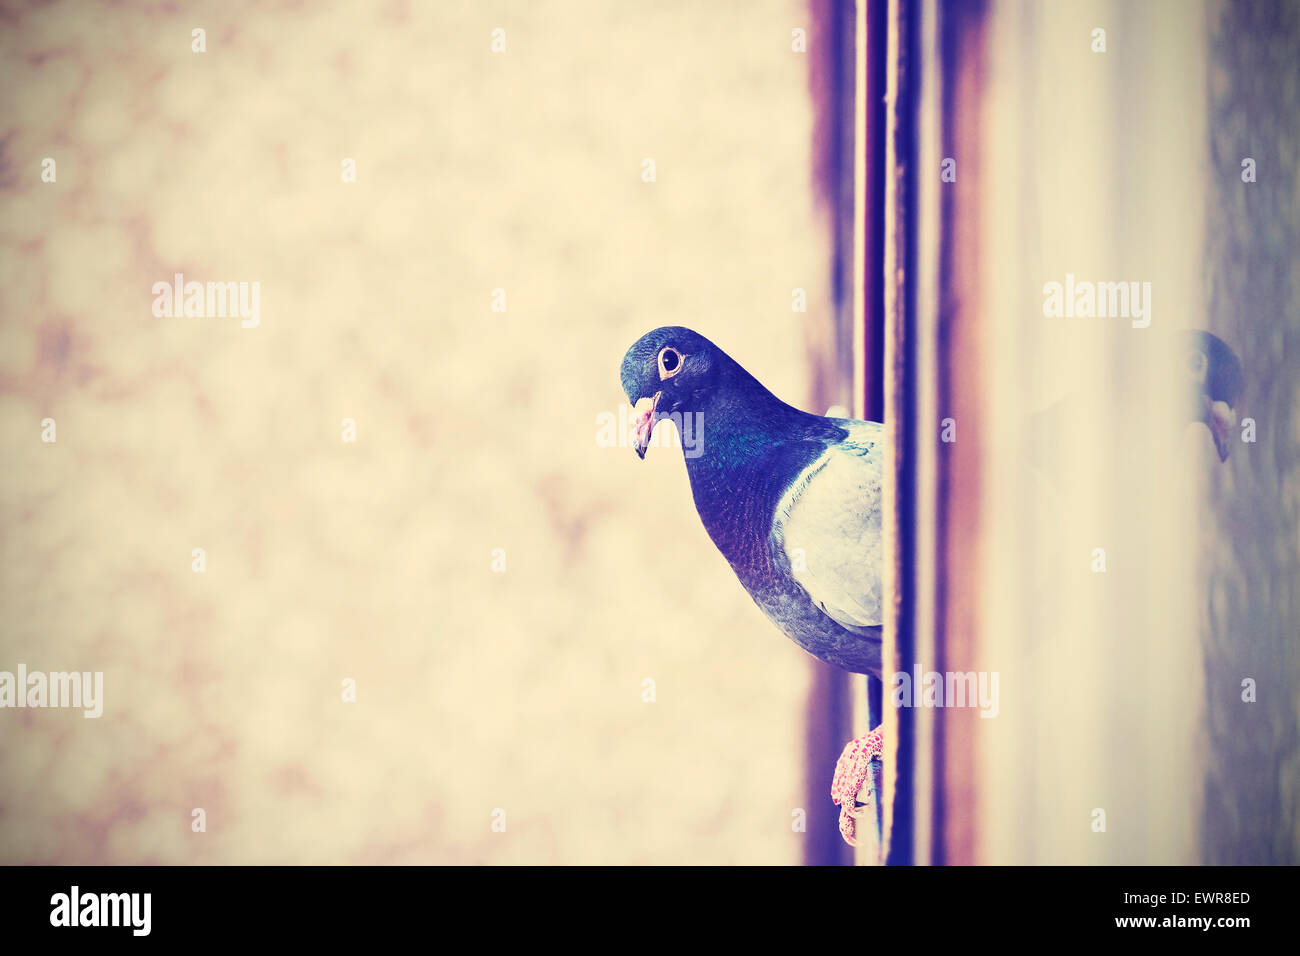 Retro instagram stylized photo of a pigeon on the window, space for text. - Stock Image